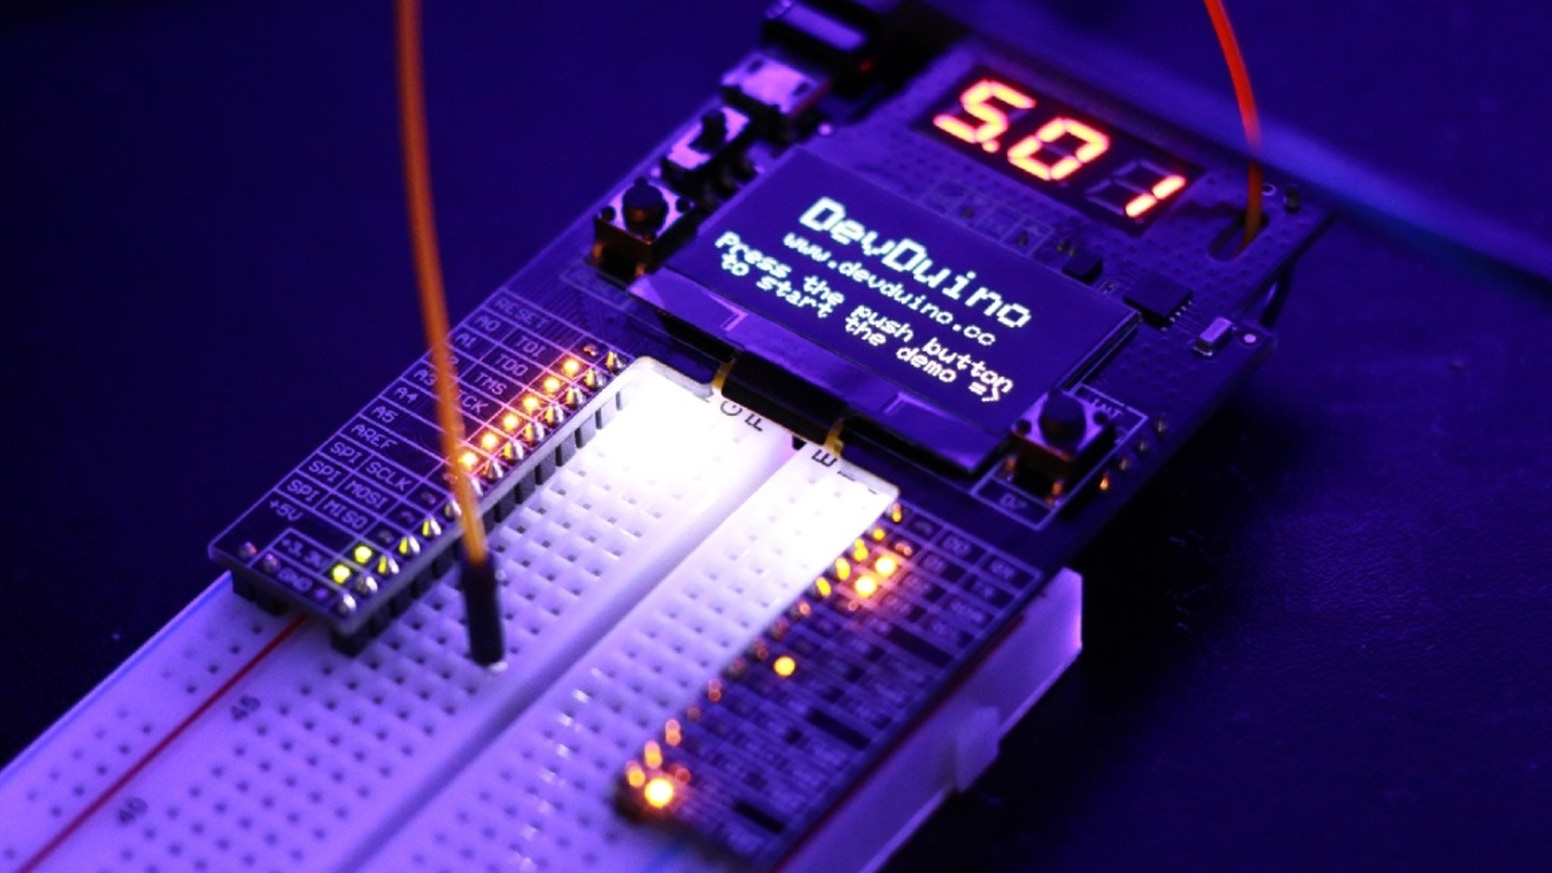 Devduino The Best Way To Learn And Explore Arduino World By About Circuit Boards A Fully Redesigned Enhanced Compatible Board With Plenty Of Must Have Features